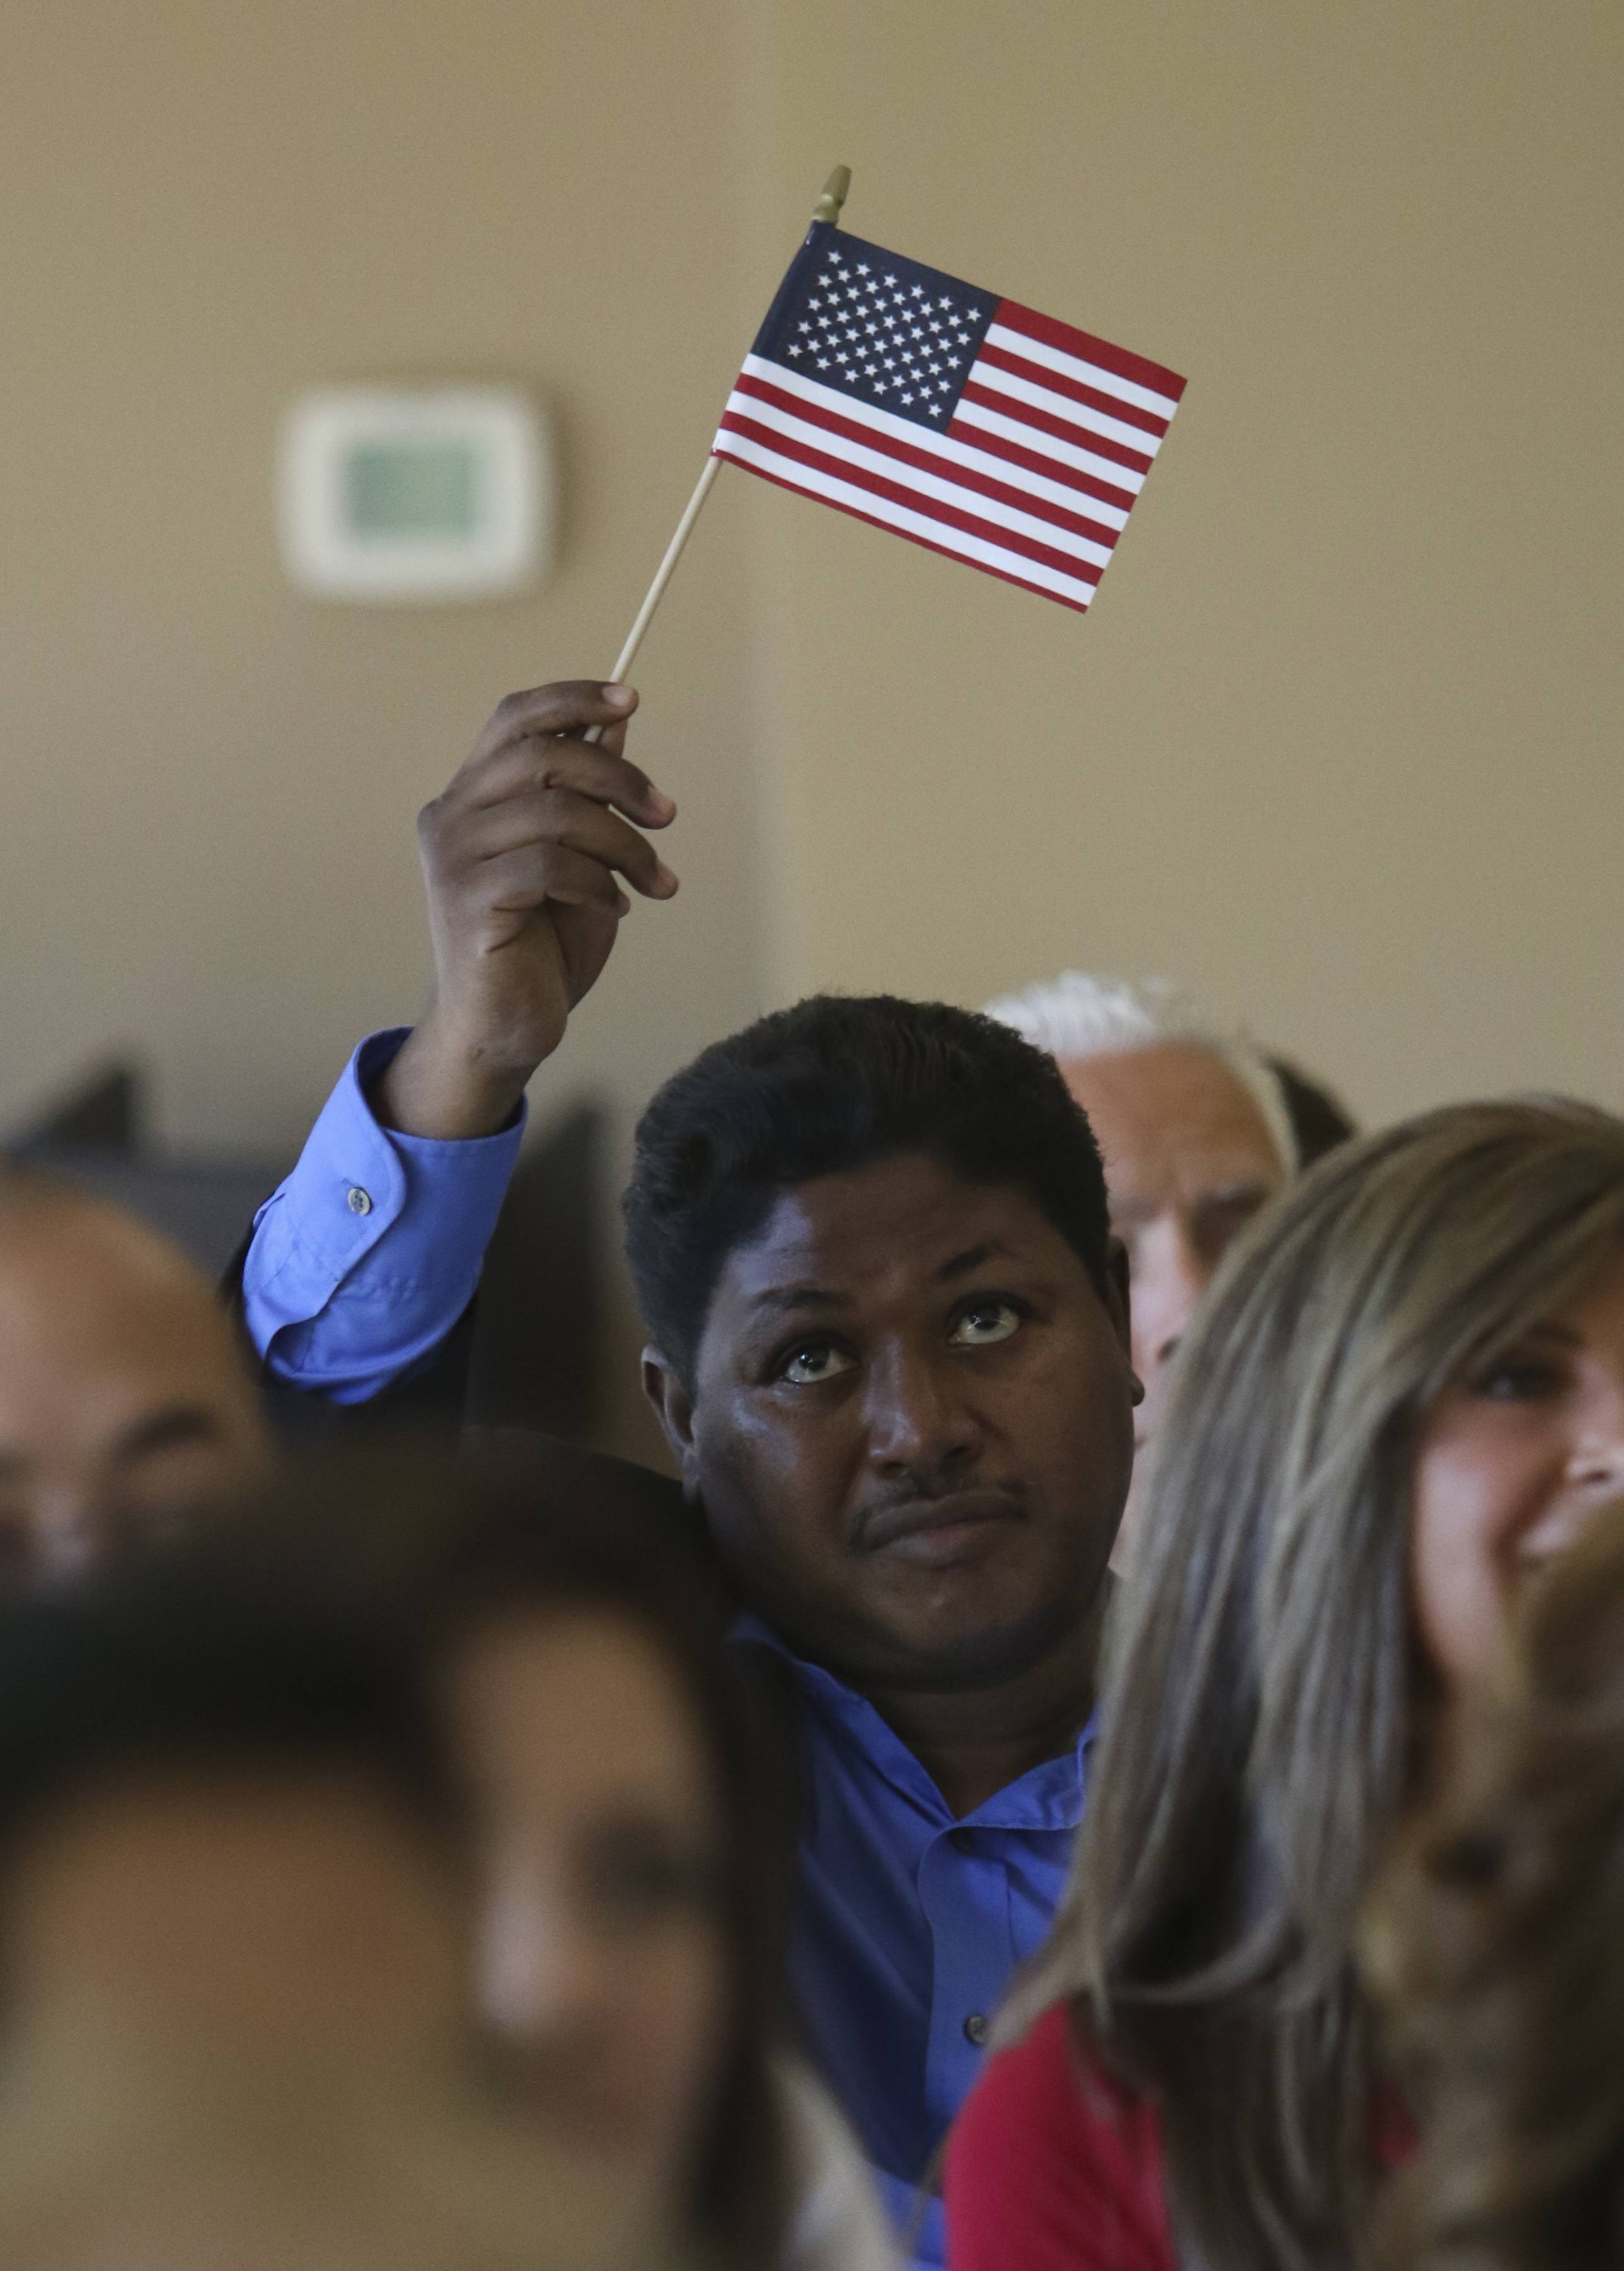 Mohammed Elfaki, who is originally from Sudan, waves the American flag as he becomes a U.S. citizen during the naturalization ceremony for new citizens at Cantigny Park in Wheaton on Thursday.